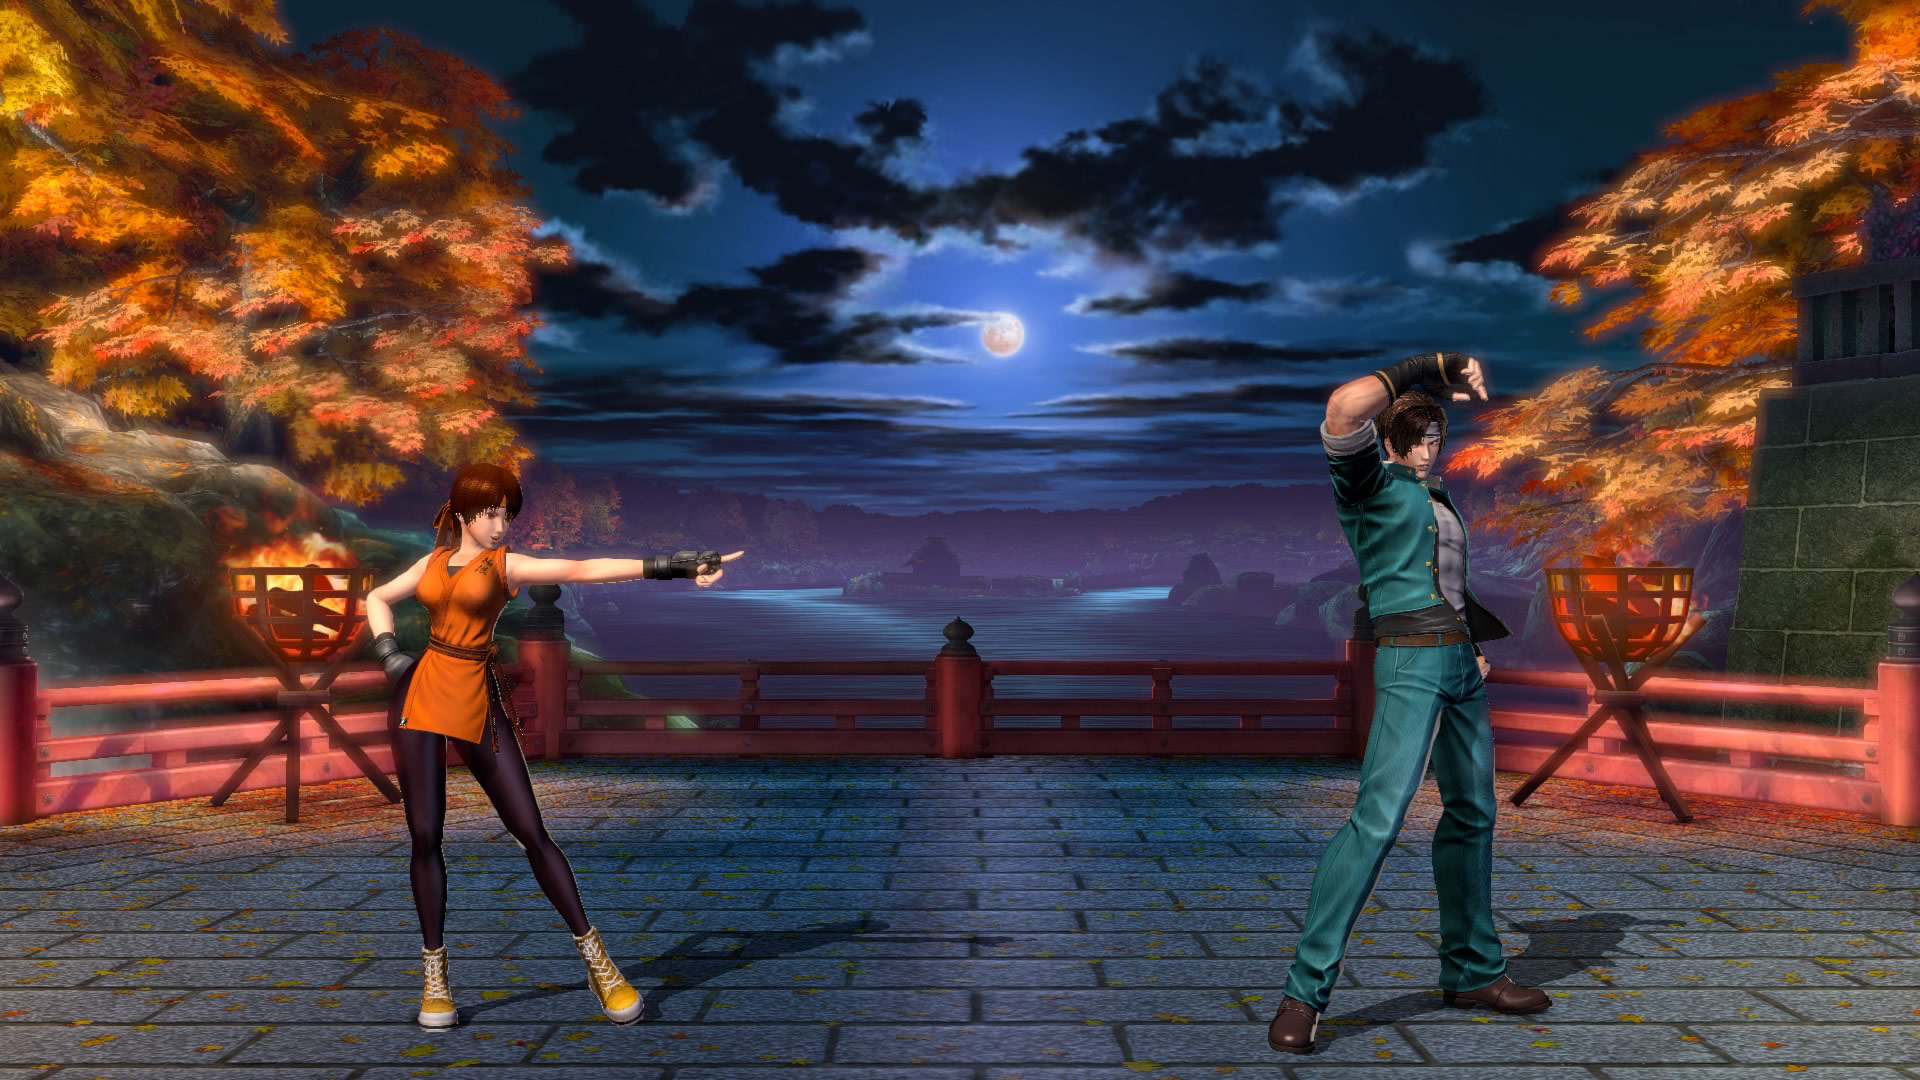 King of Fighters 14 1.10 graphics update 15 out of 60 image gallery